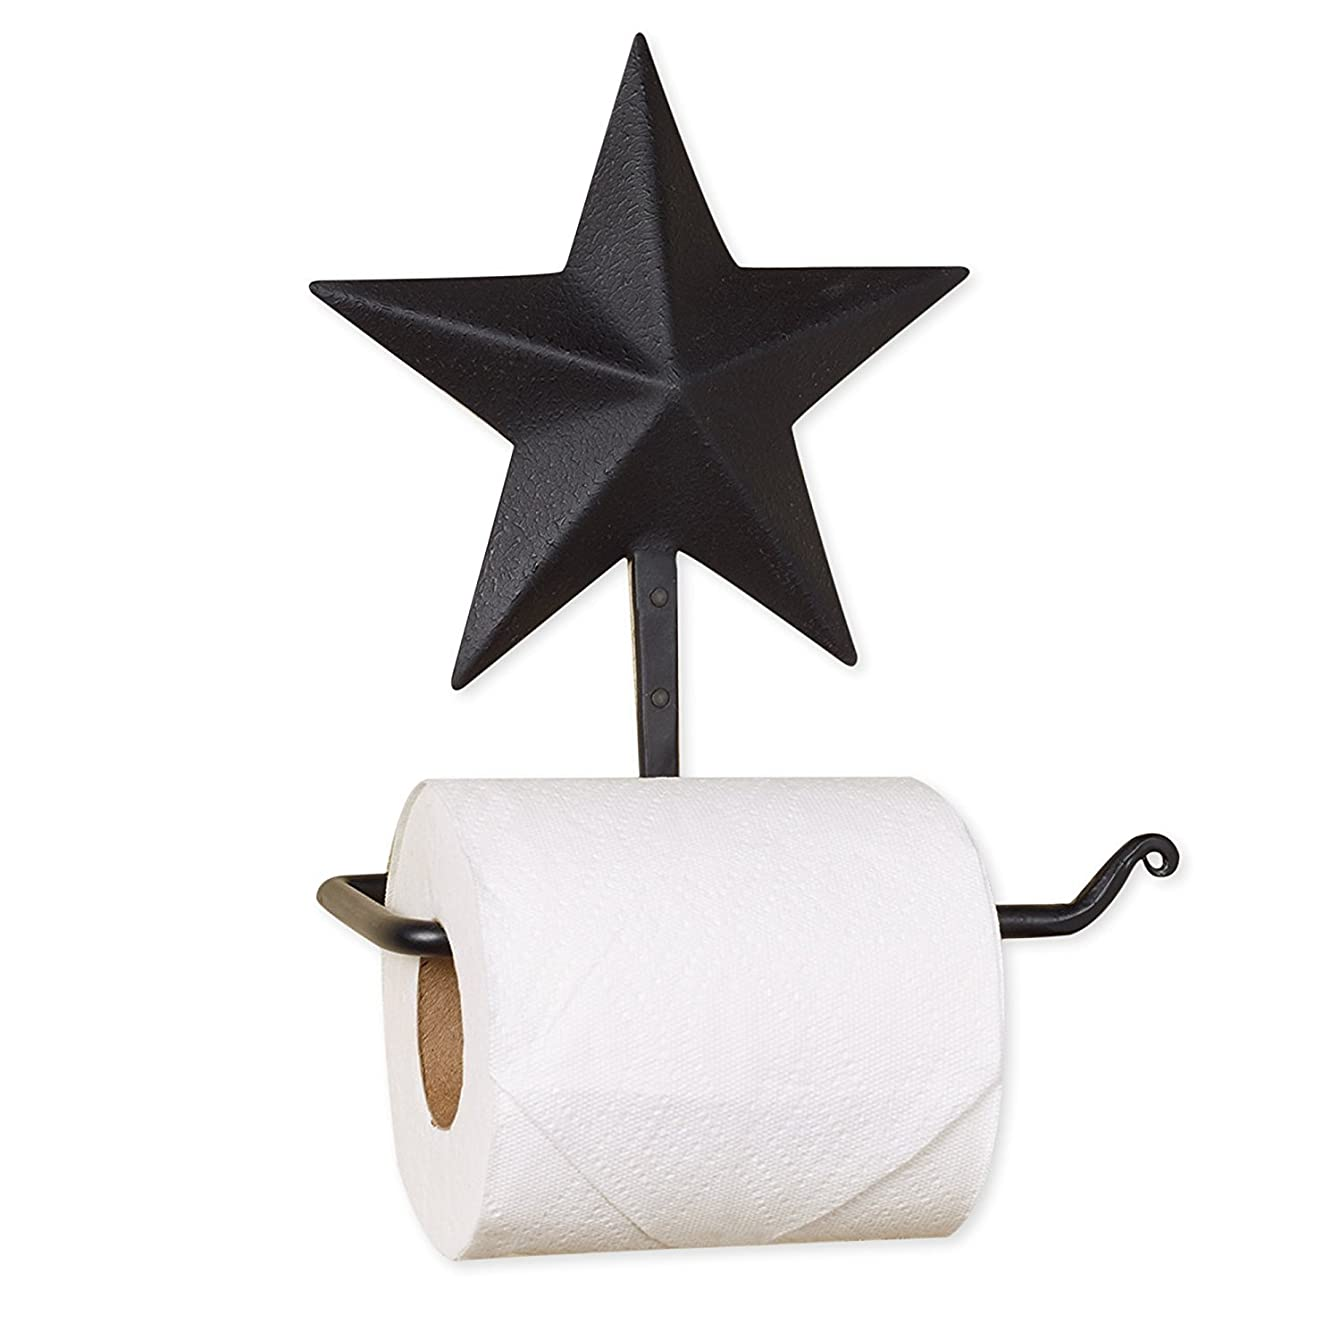 Black Barn Star 7 x 8 Inch Metal Toilet Paper Roll Holder